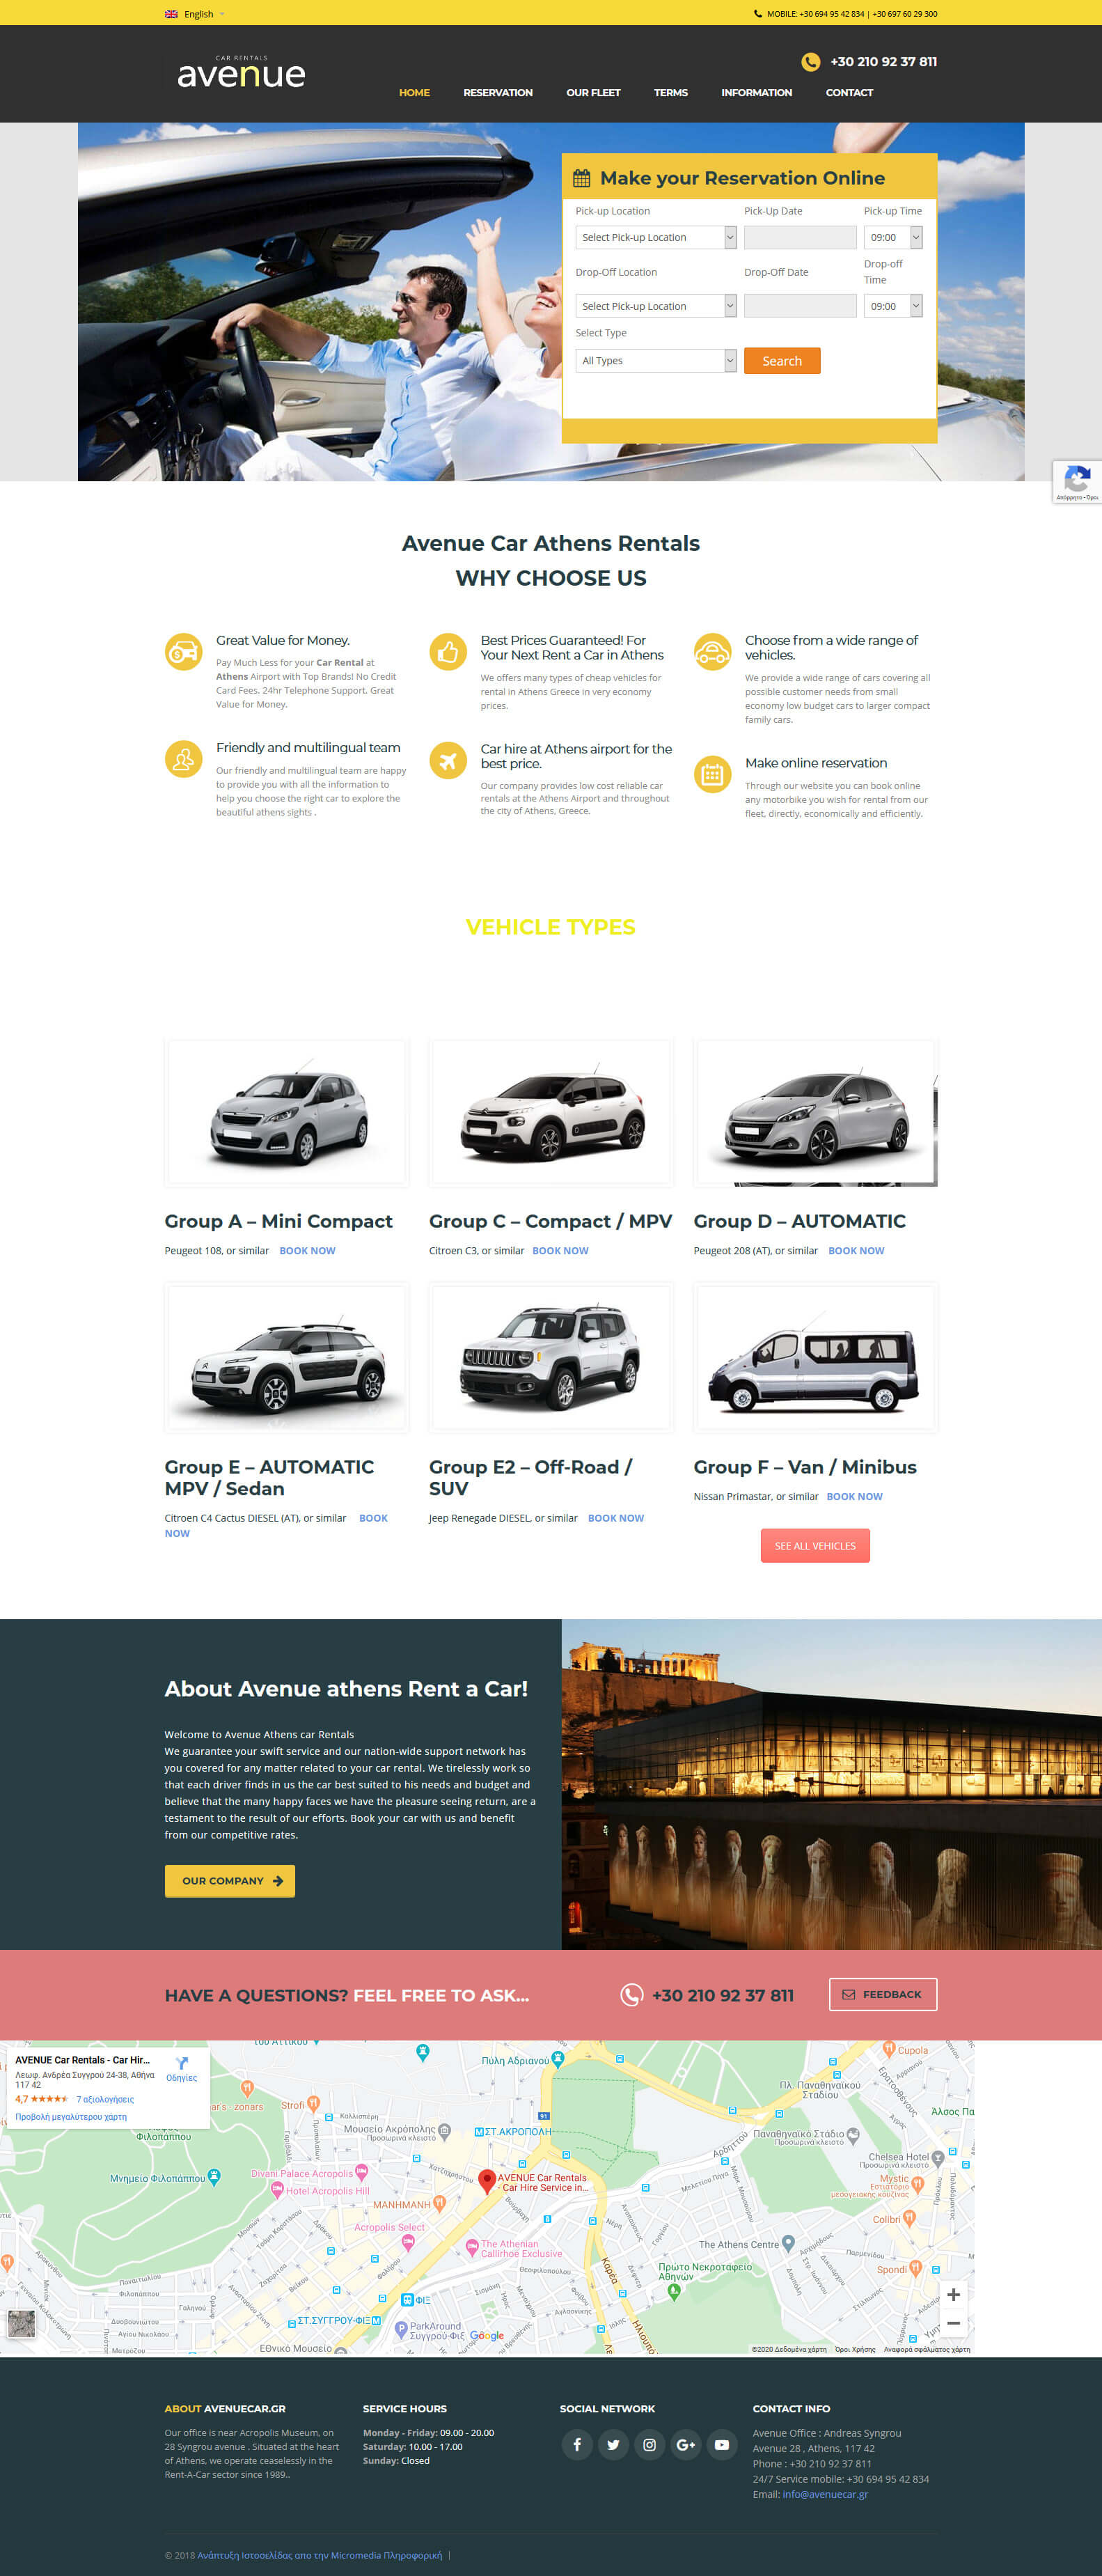 Avenue-athens rent a car Cheap Car Rental in Athens Greece